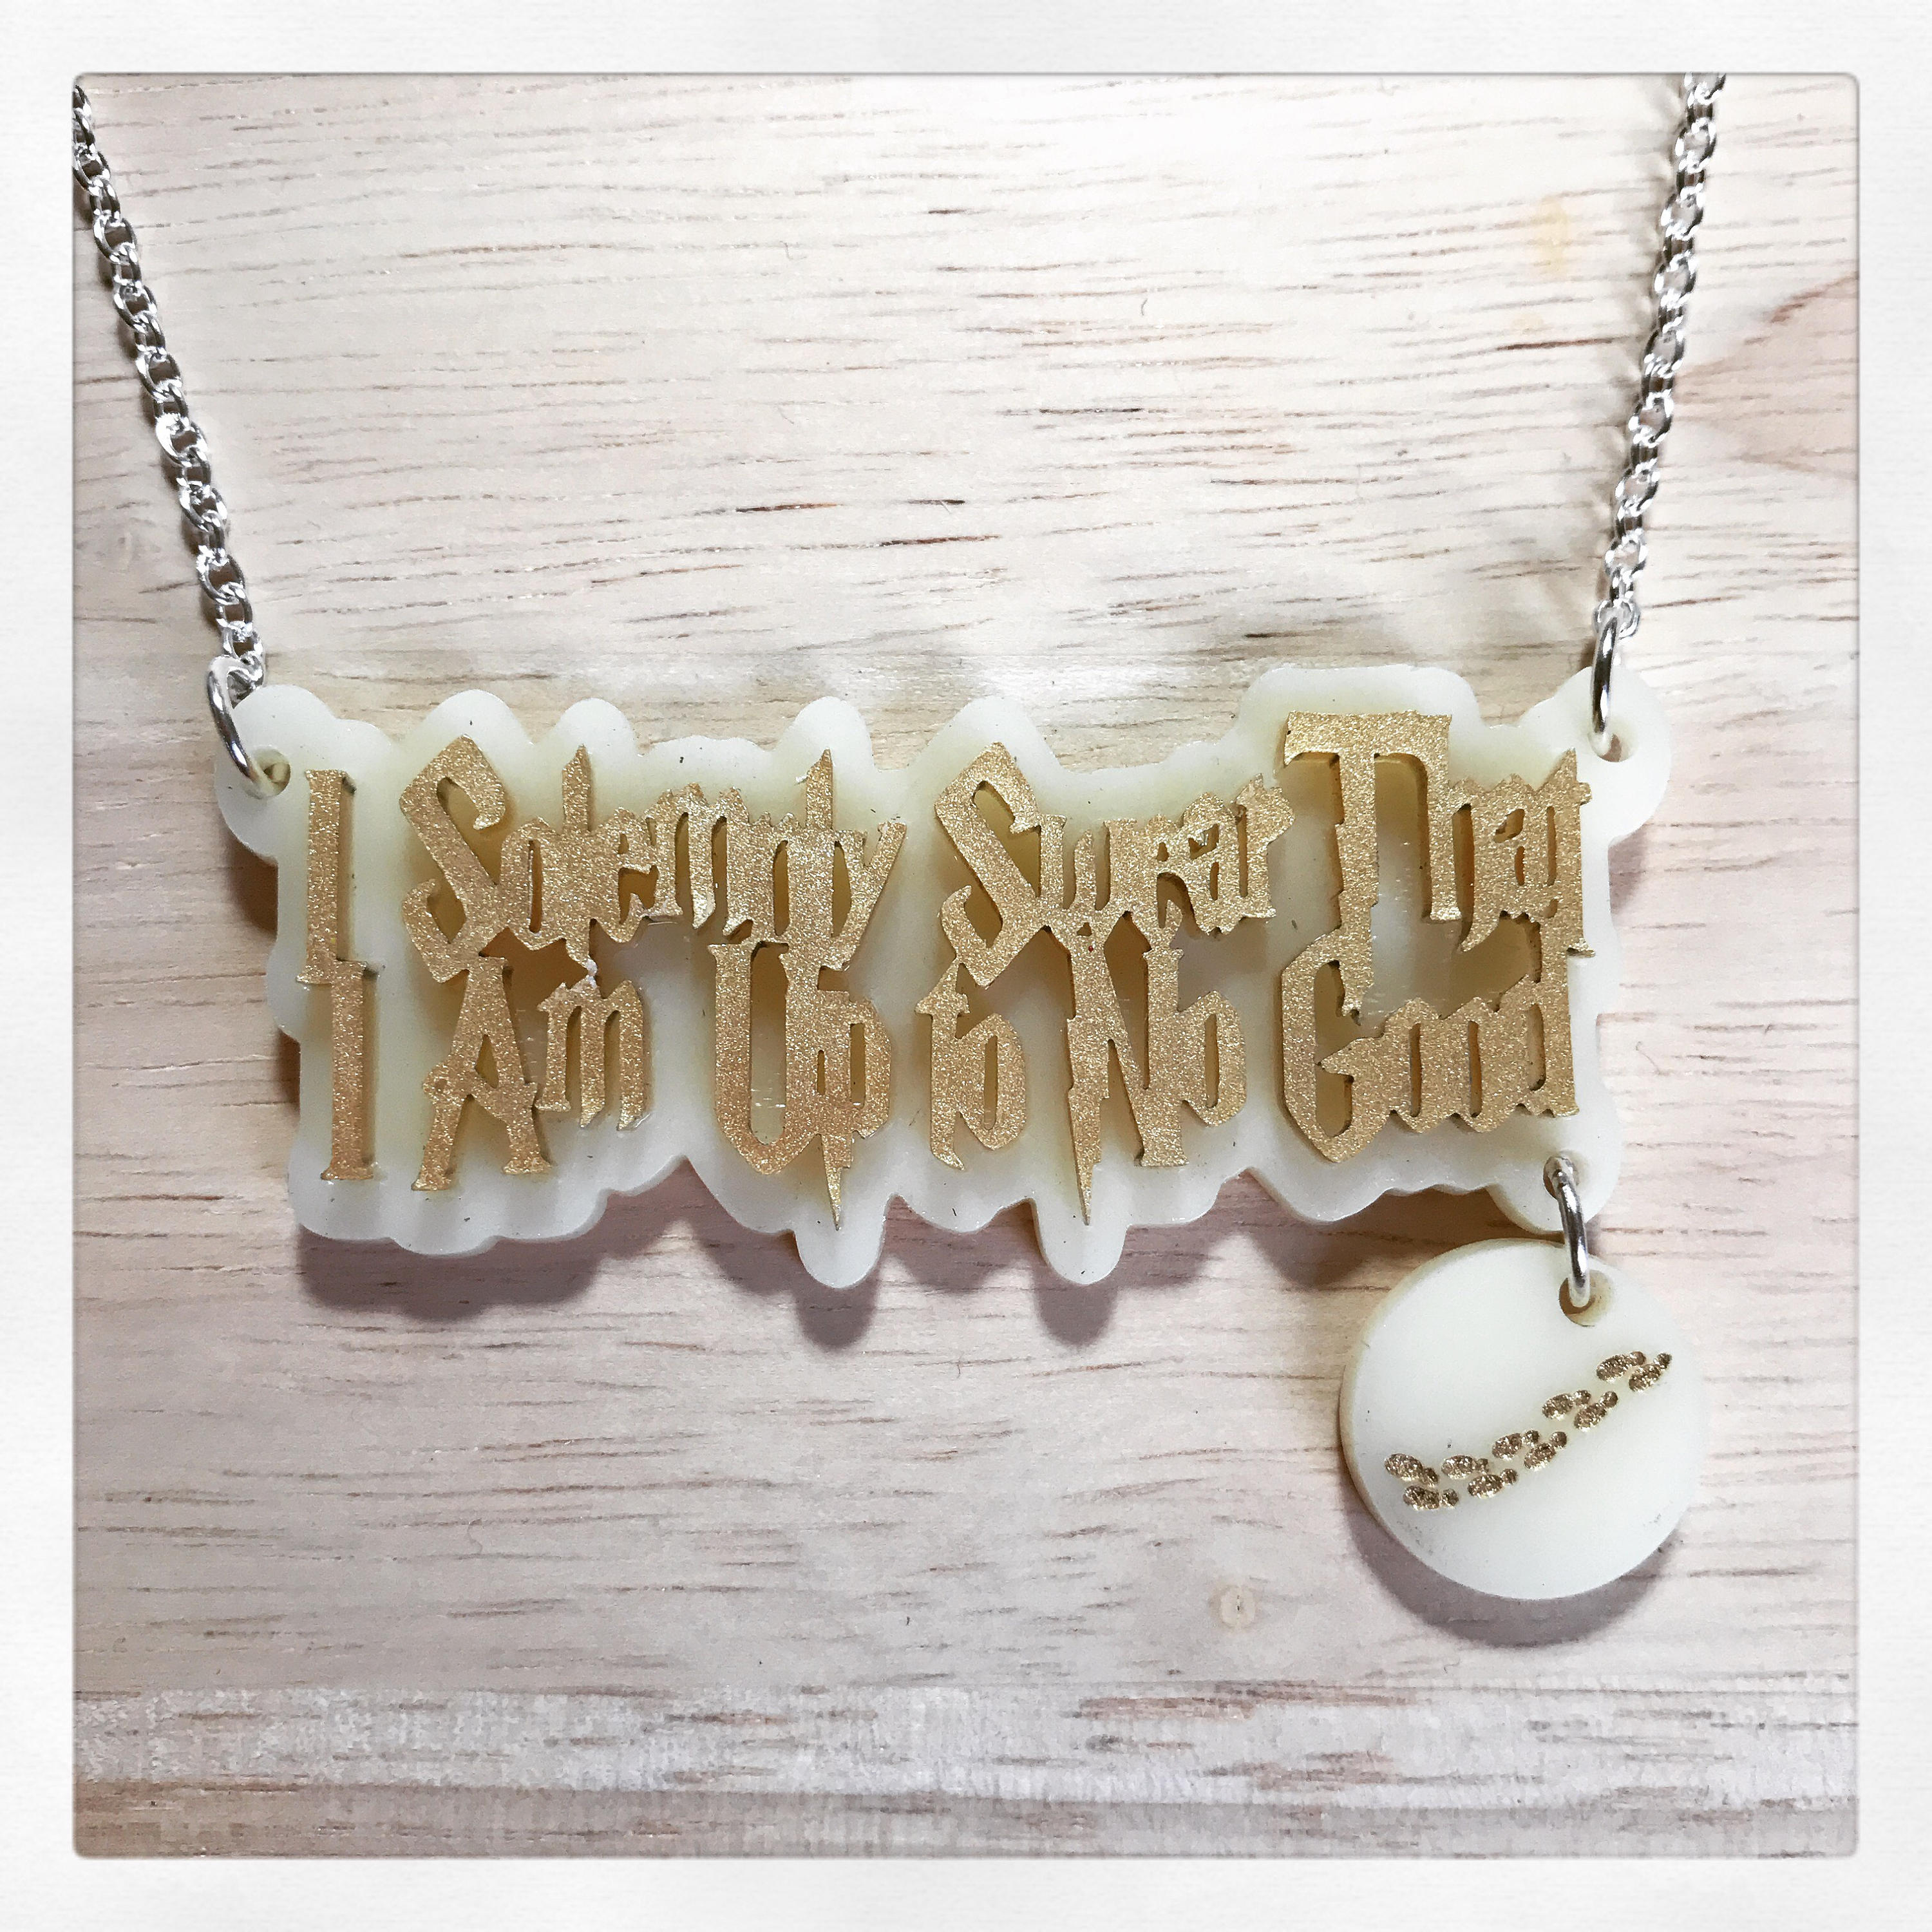 'I Solemnly Swear That I Am Up To No Good' Acrylic Necklace with Charm